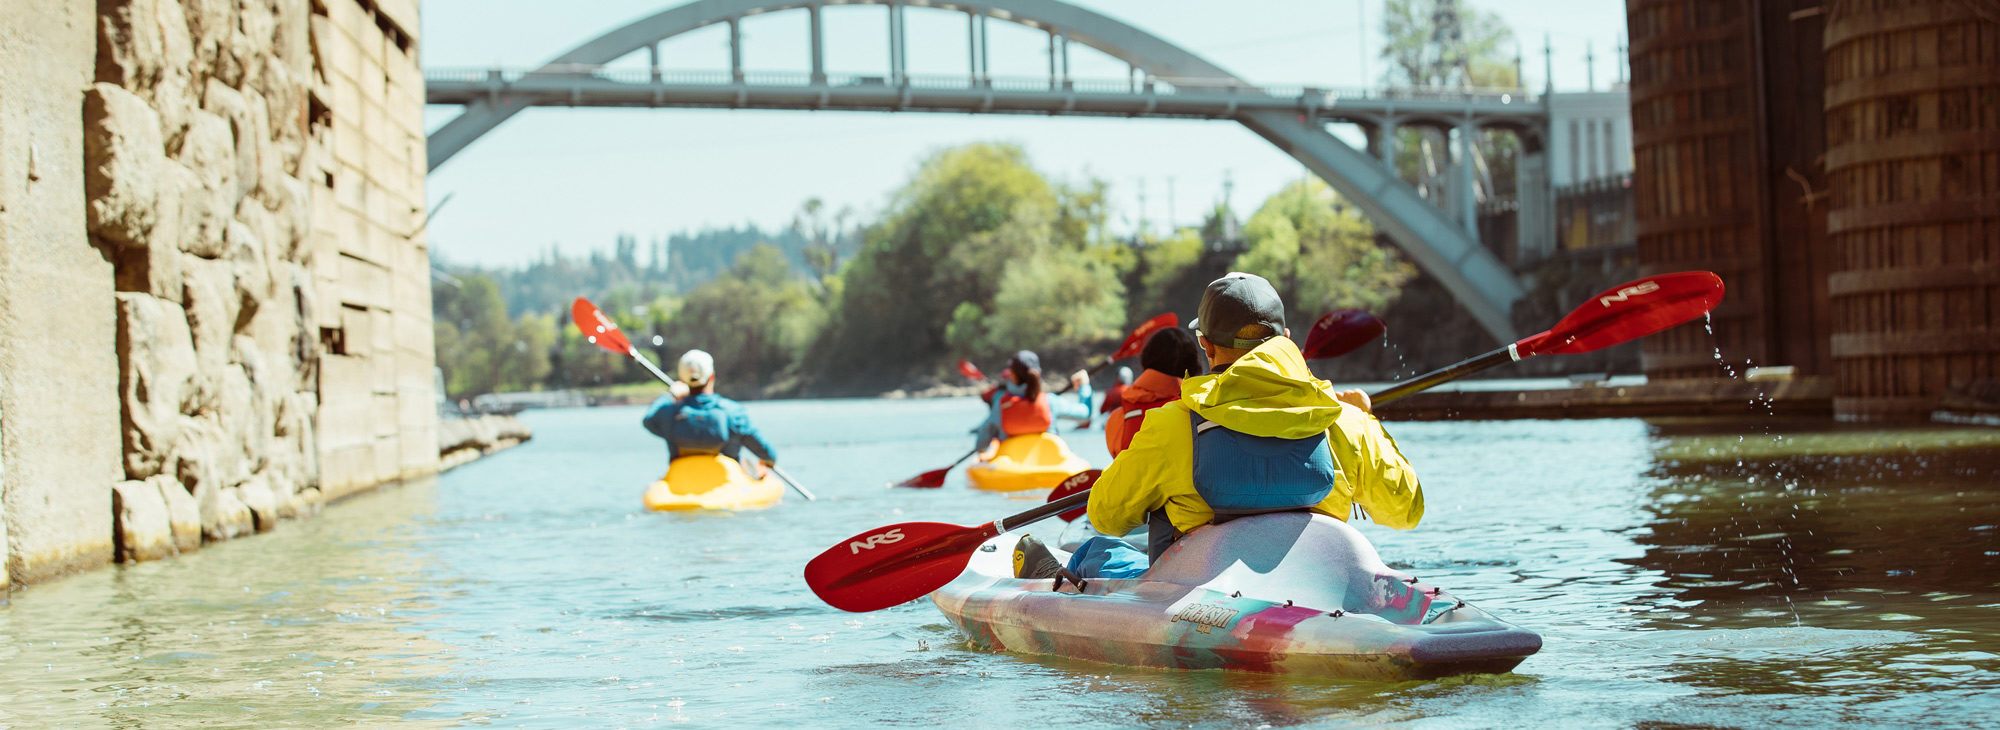 kayaking the willamette river near a bridge